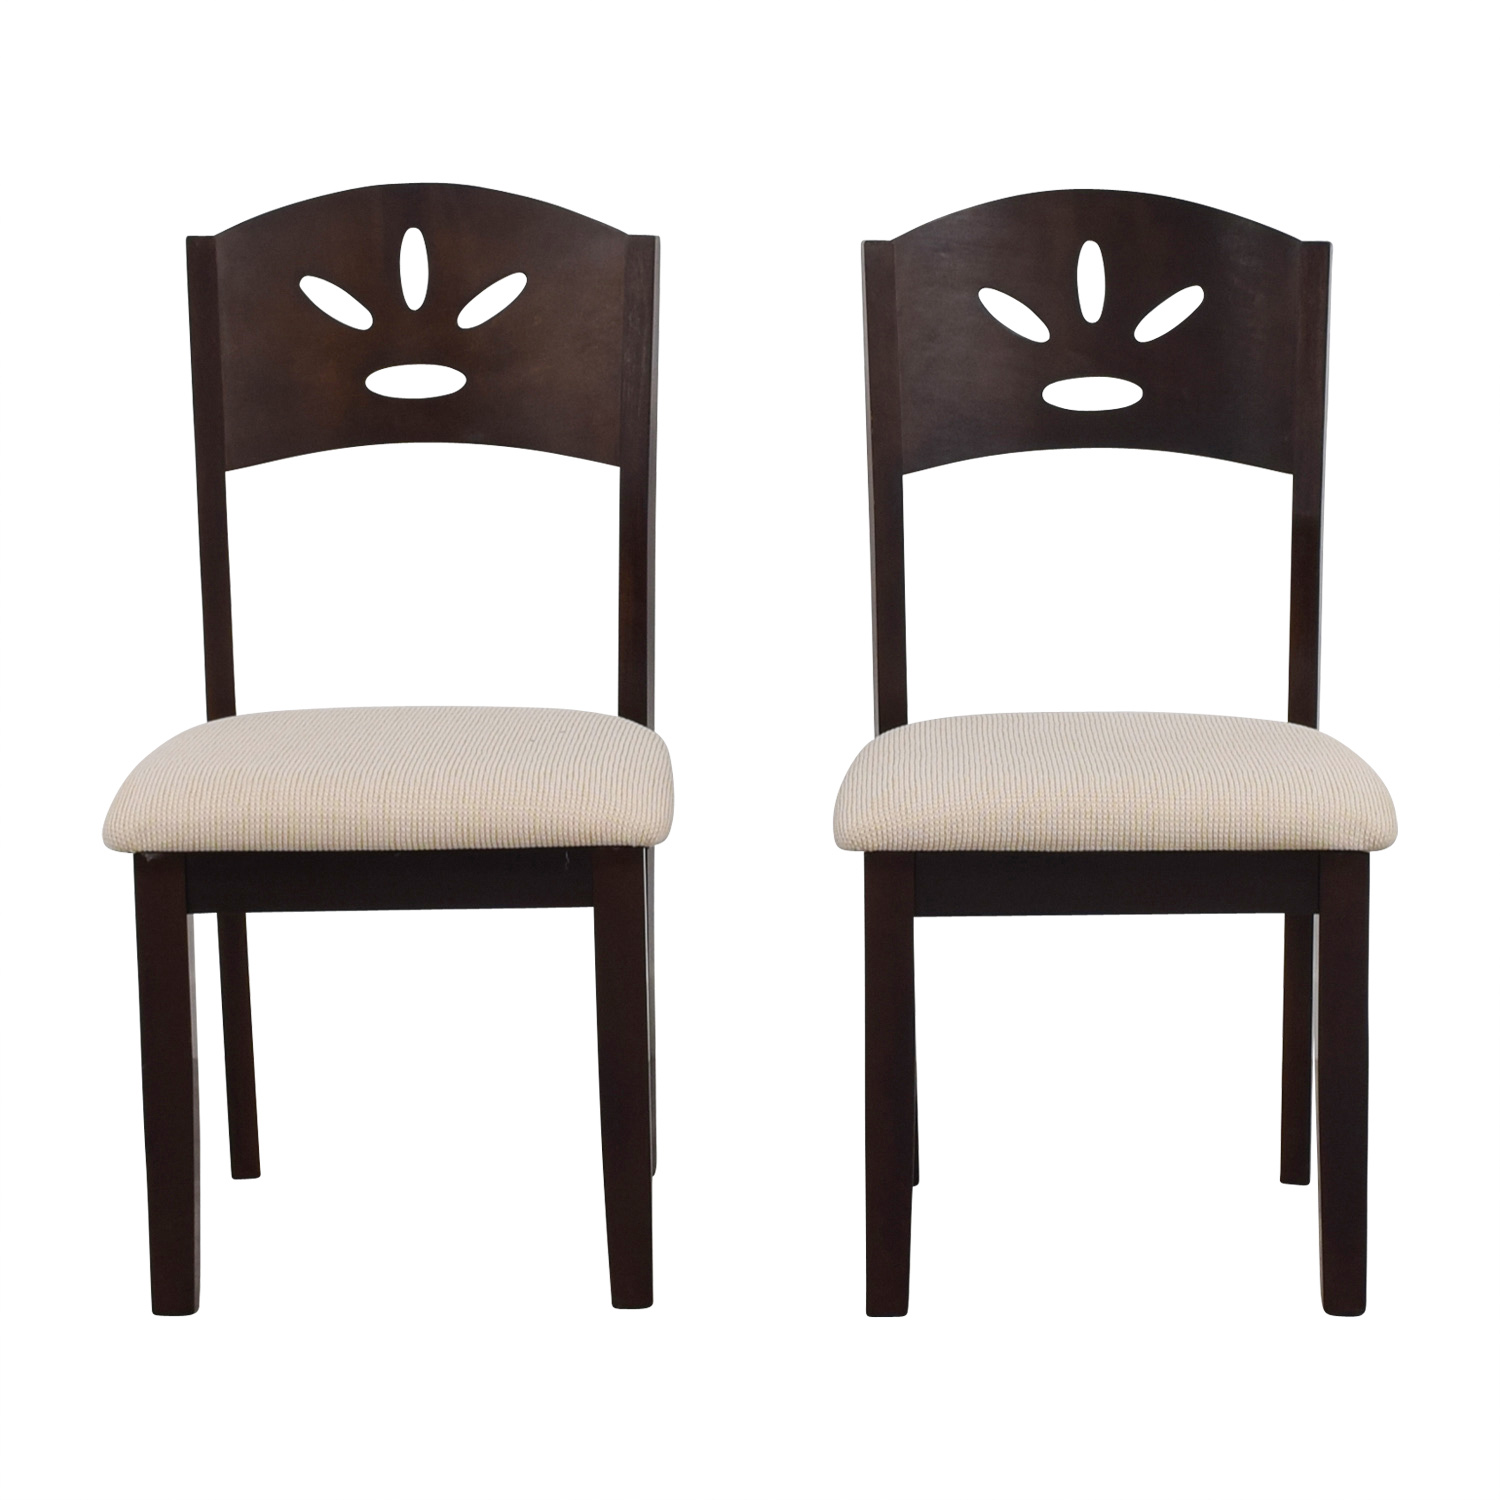 Off White and Wood Dining Chairs dimensions